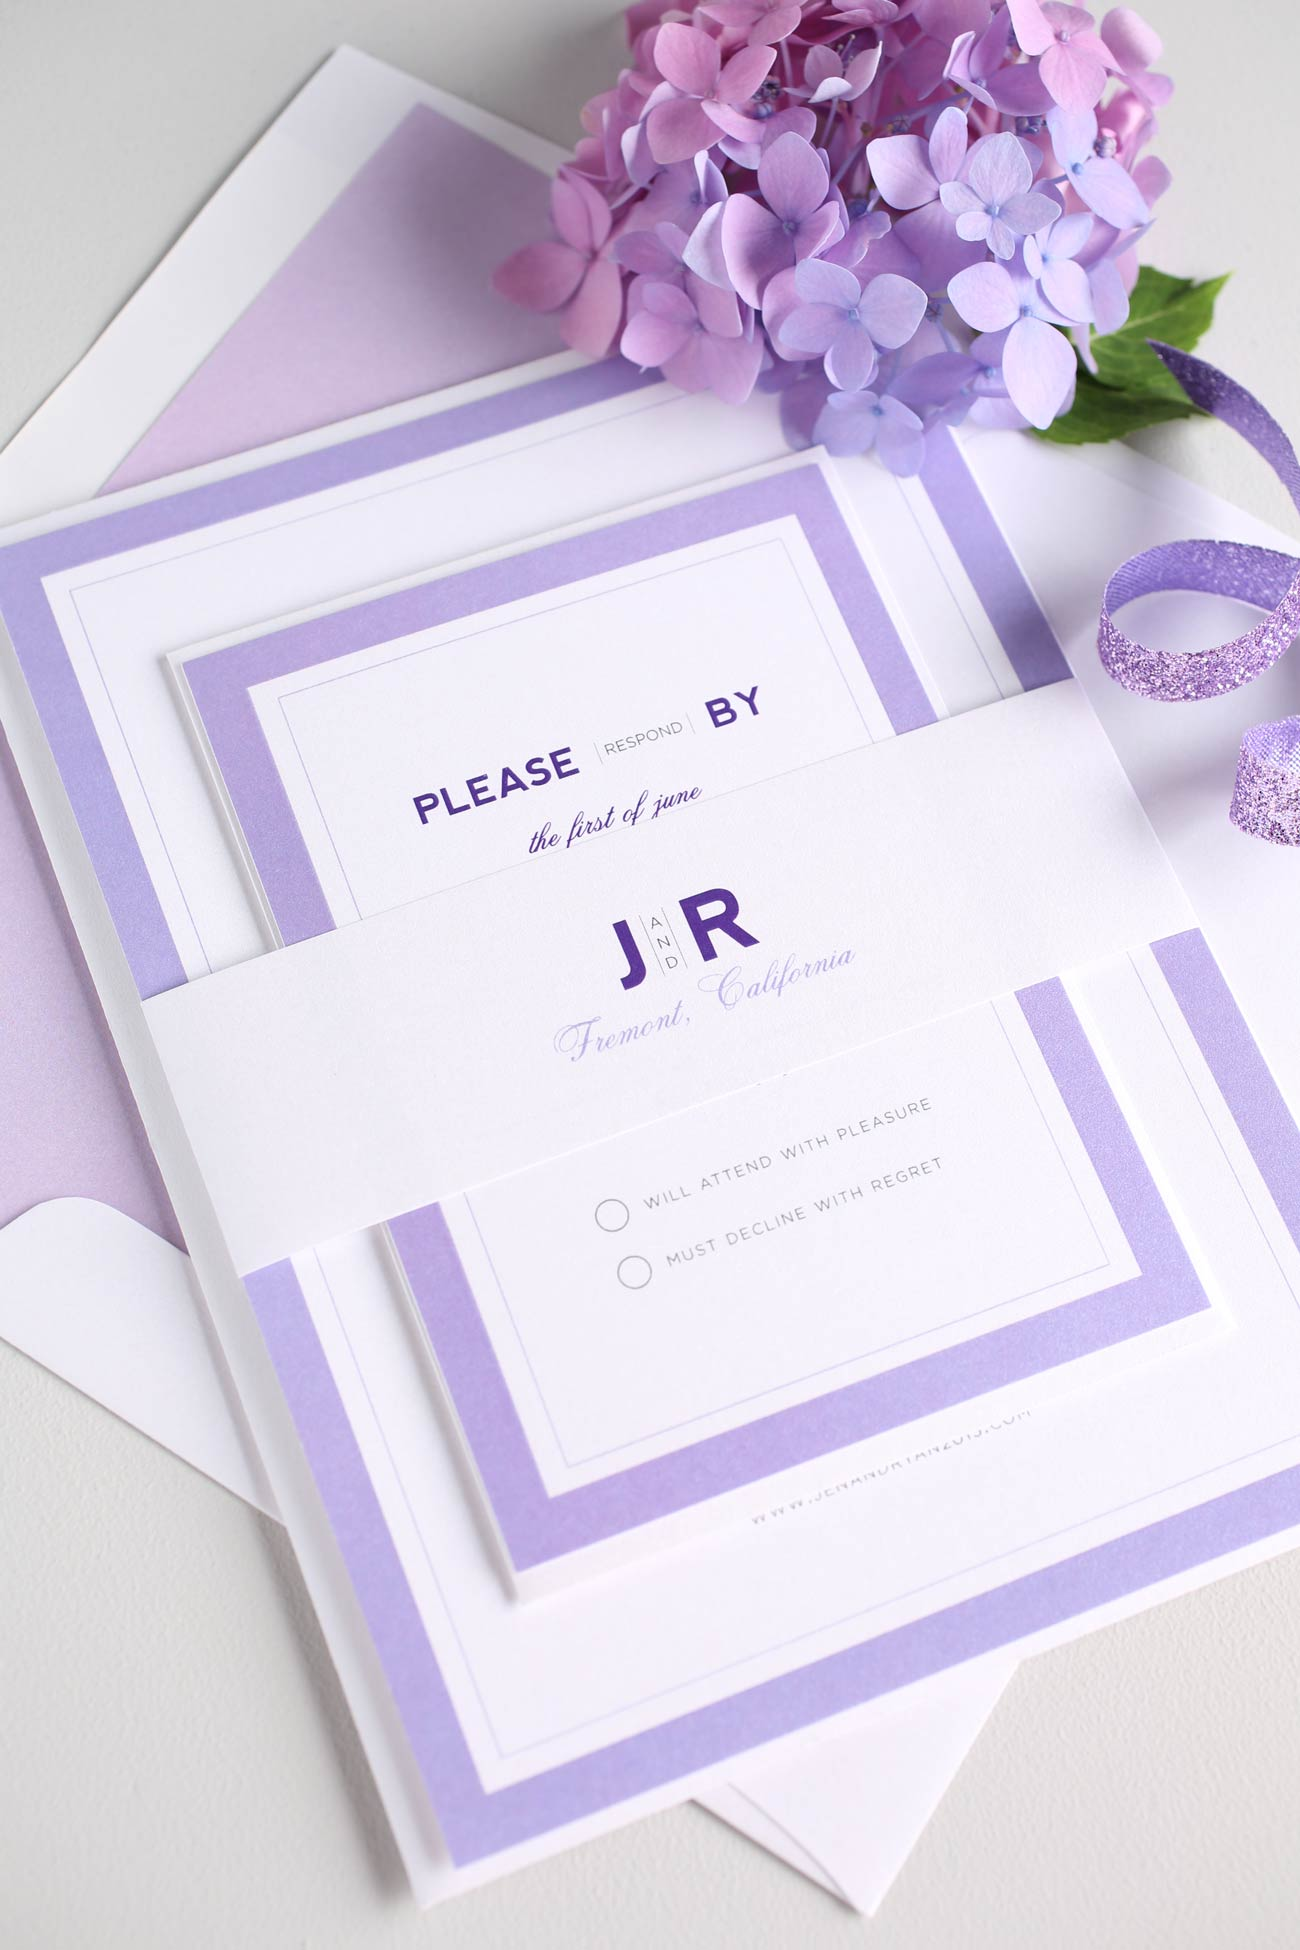 Monogram wedding invitations in purple ombre